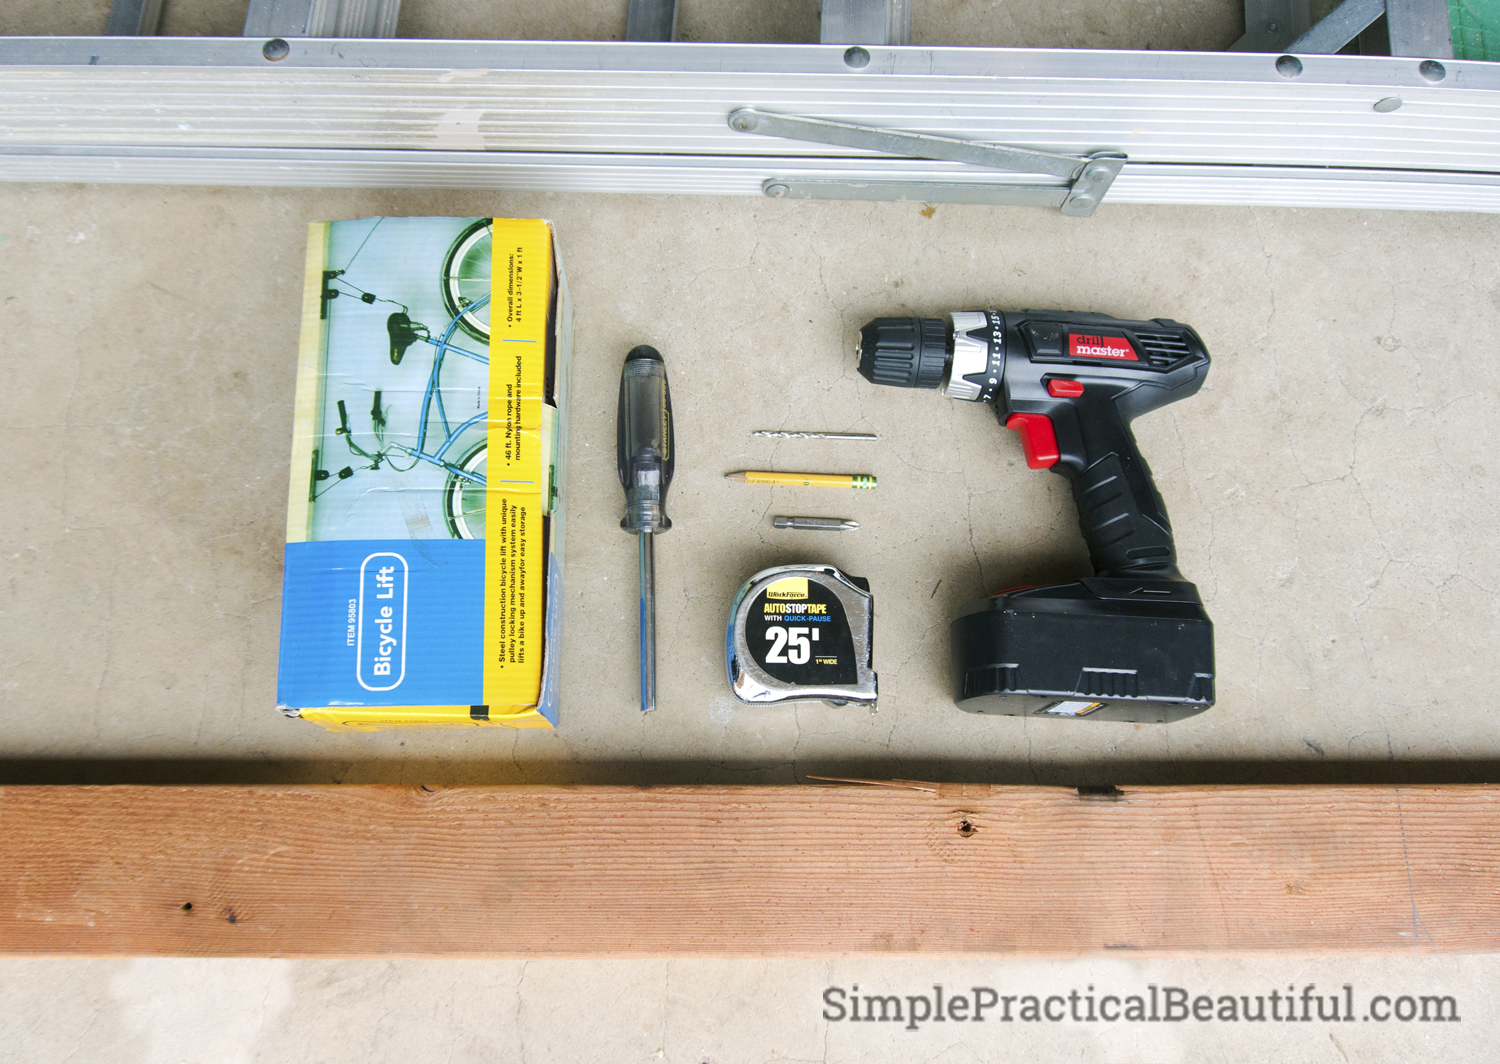 Tools needed to install the Bicycle Lift: drill, screw driver, tape measure, 2X4 board